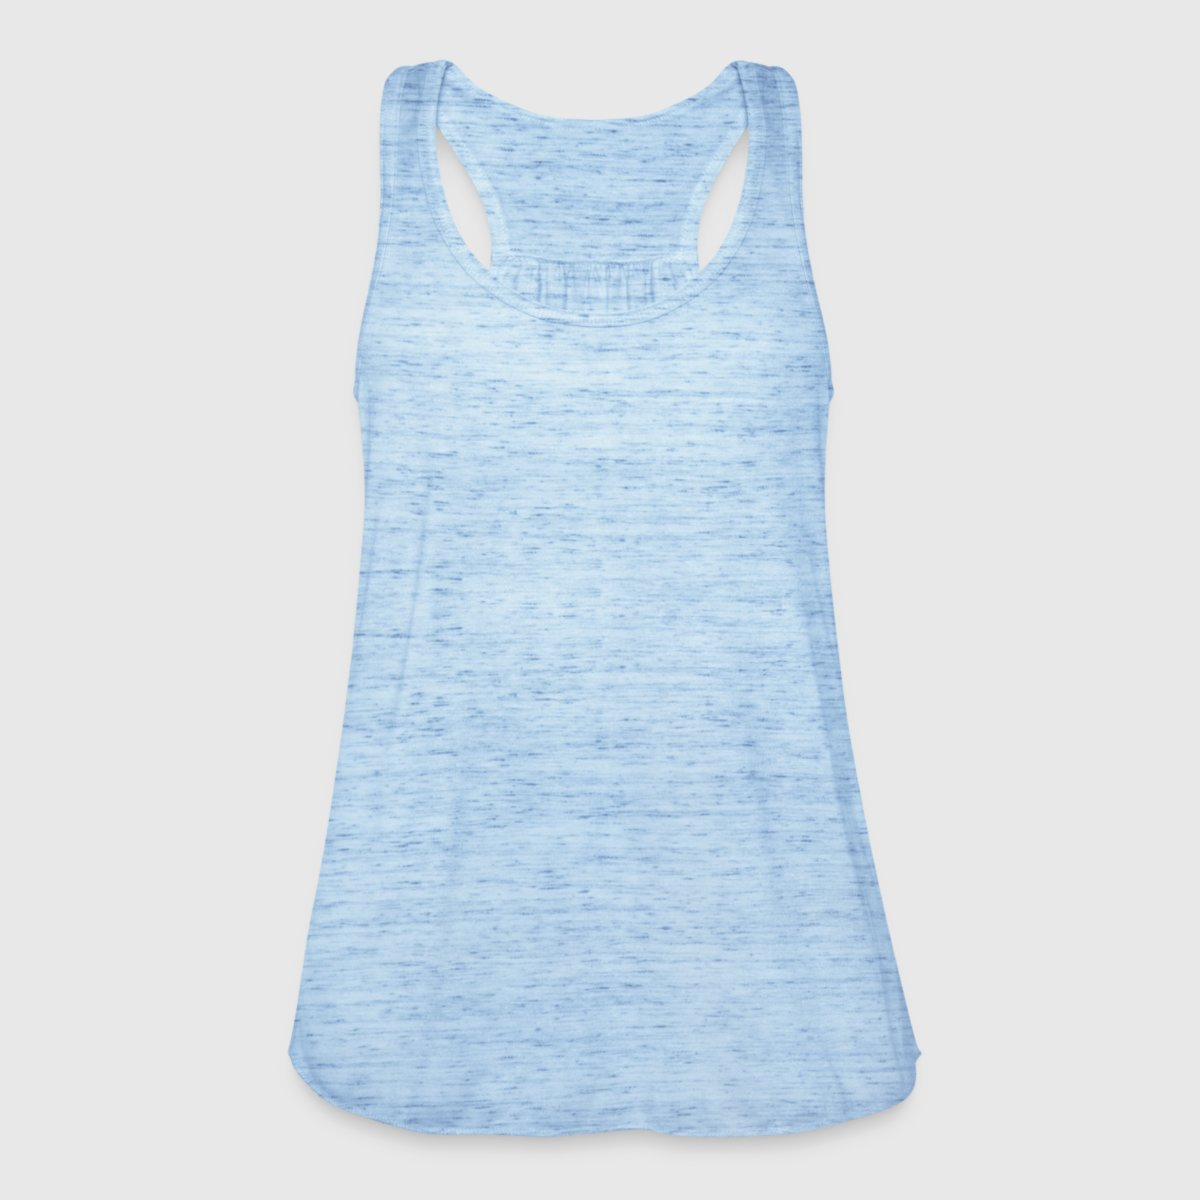 Featherweight Women's Tank Top - Front